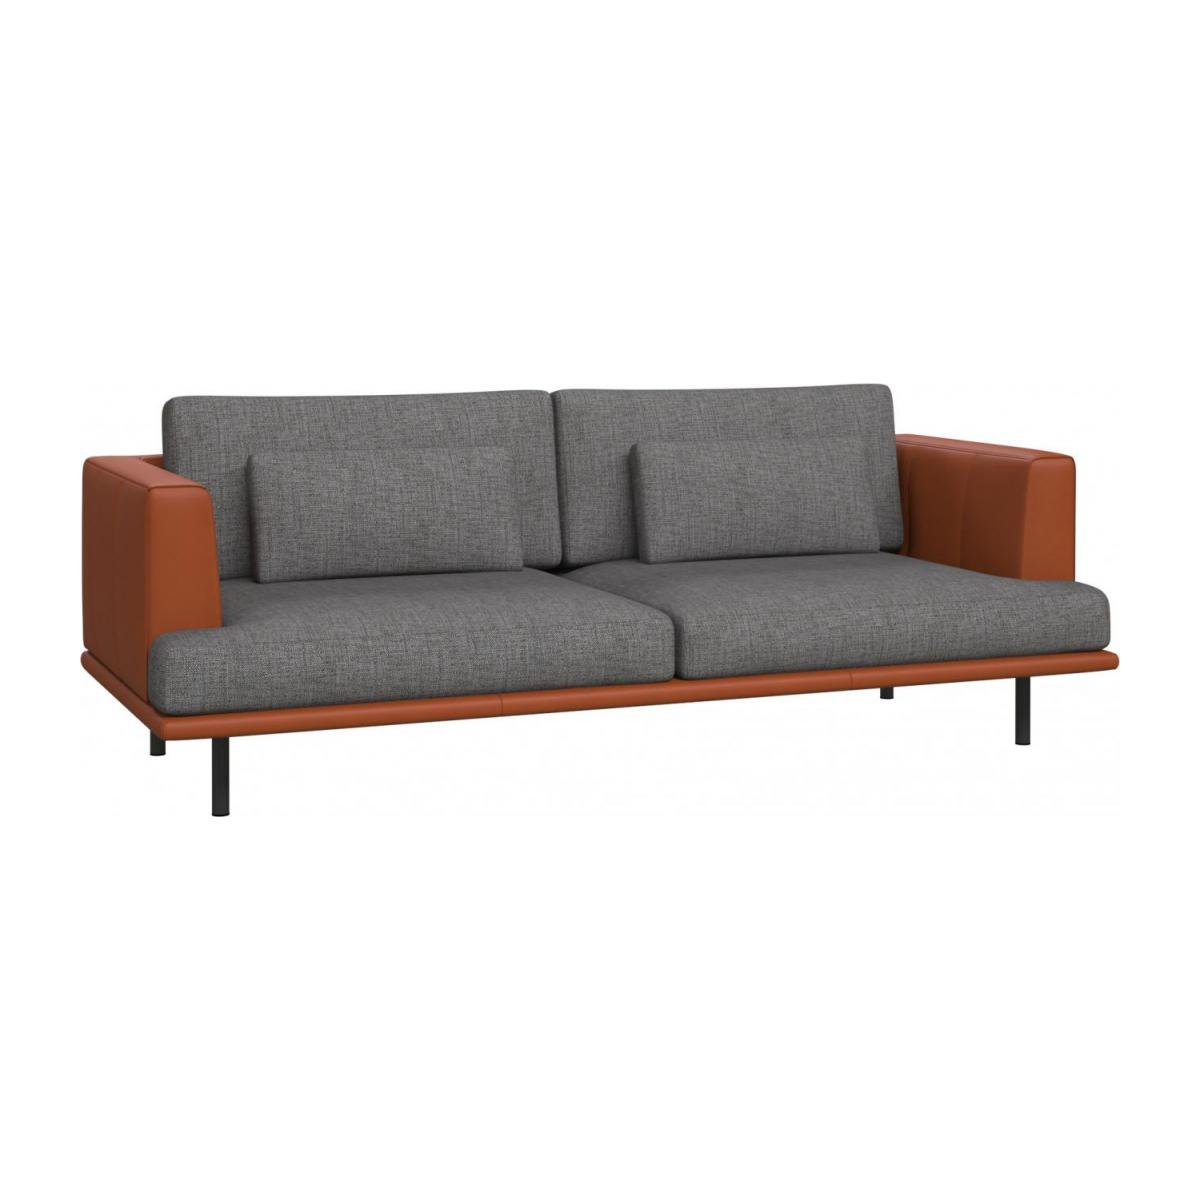 3-seter sofa Ancio river rock med base og vanger i brun skinn n°1